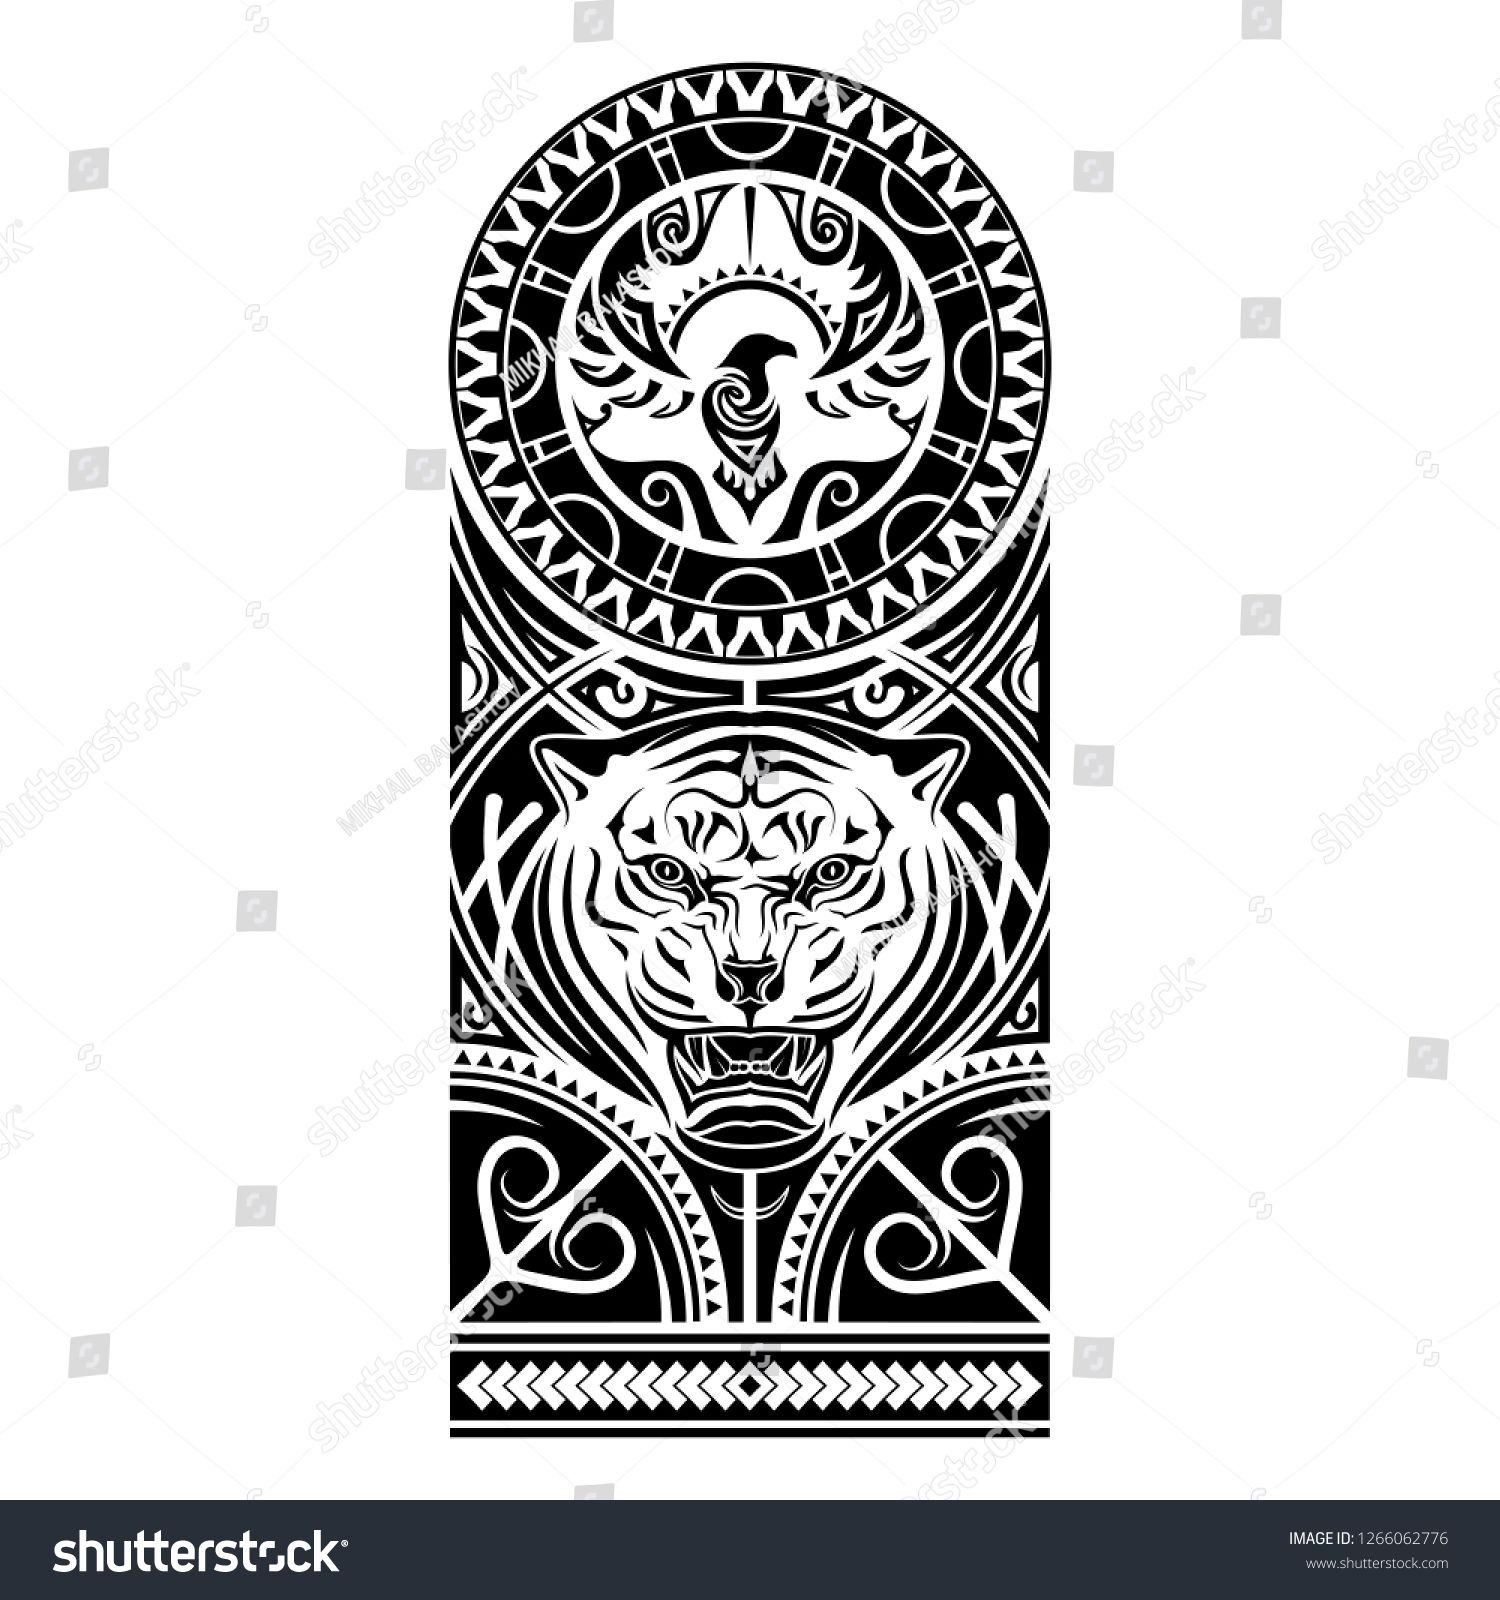 Vector Image Of The Stylized Bird And Tiger Polynesian Tattoo Patterns Of Maori Art Of Natives Of New Zealand Sun Tattoo Tribal Tribal Tattoos Maori Tattoo